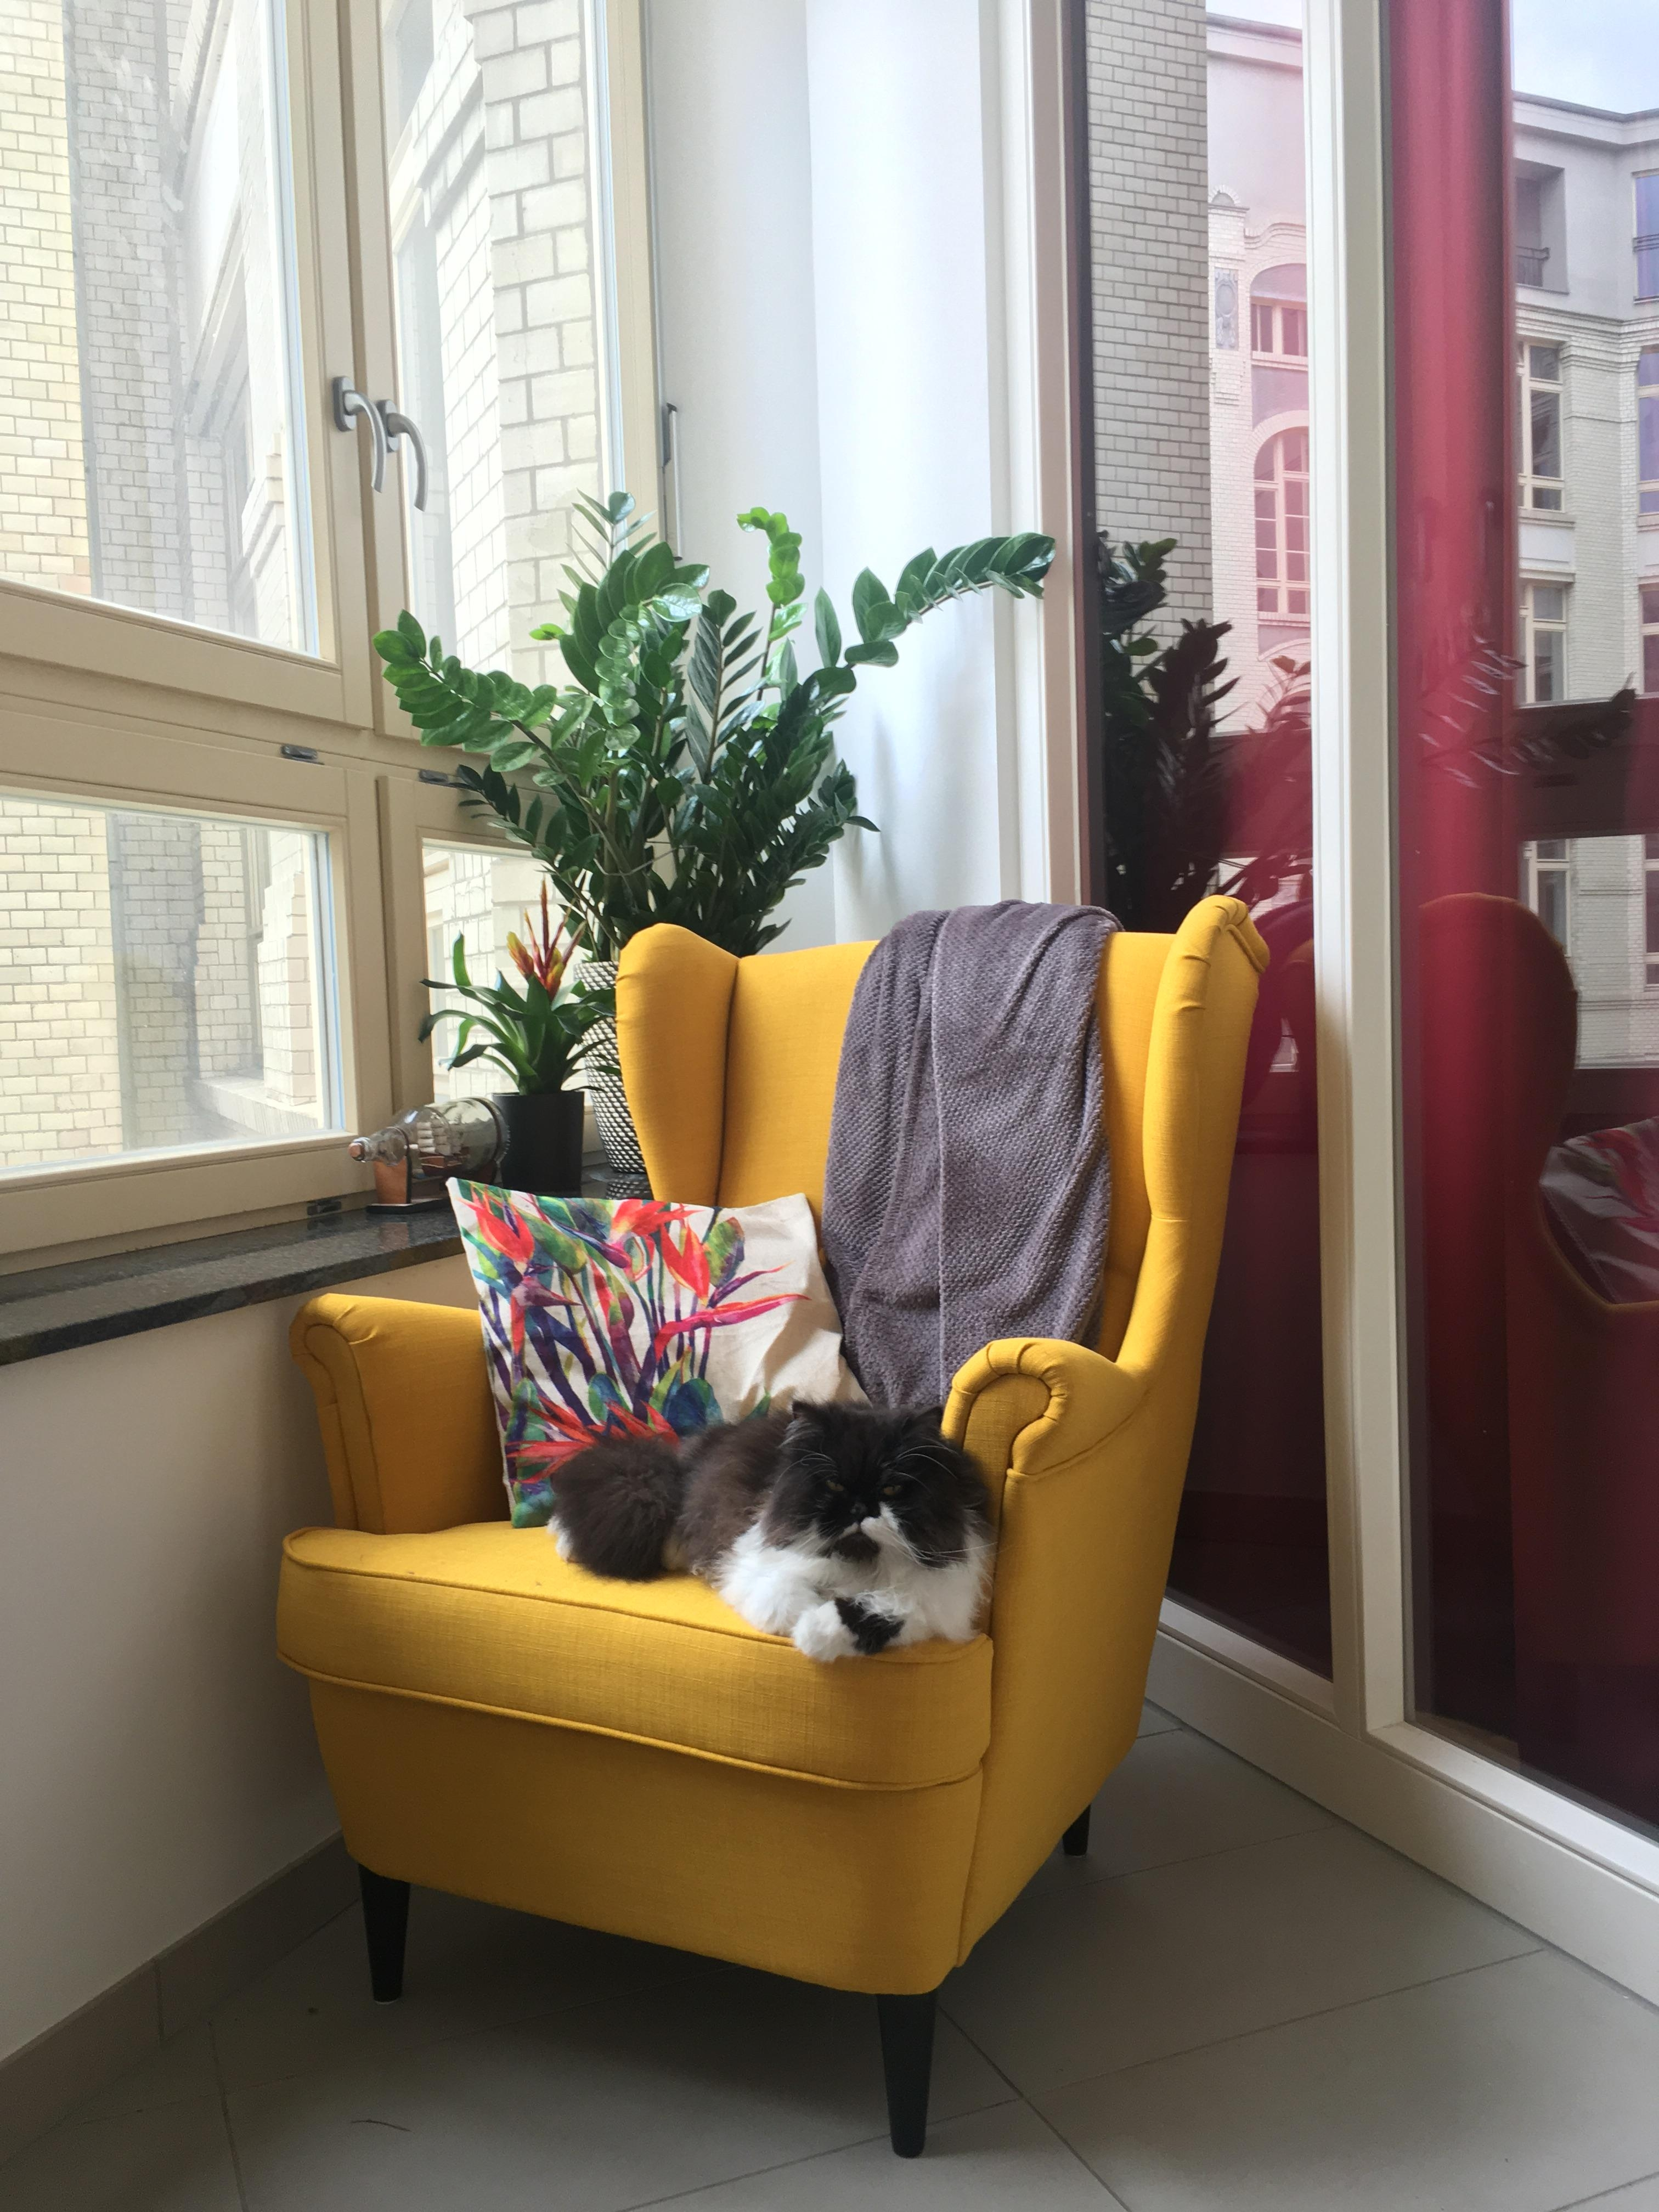 #plantlady #catmom #homeiswhereyourcatis #home #ohrensessel #lesezimmer #loggia